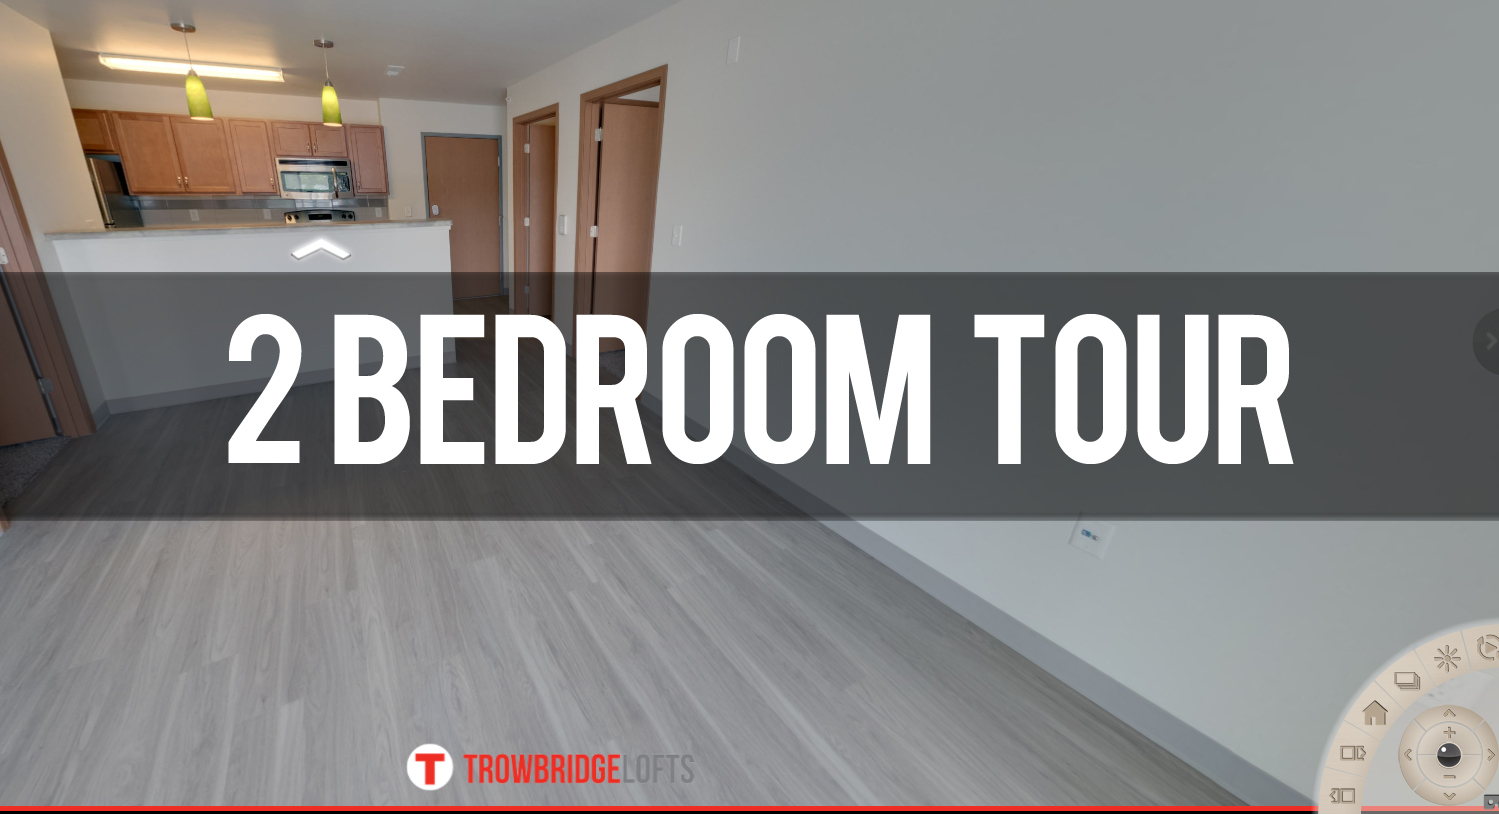 Virtual Tour of 2 Bedroom Apartment at Trowbridge Lofts Apartments